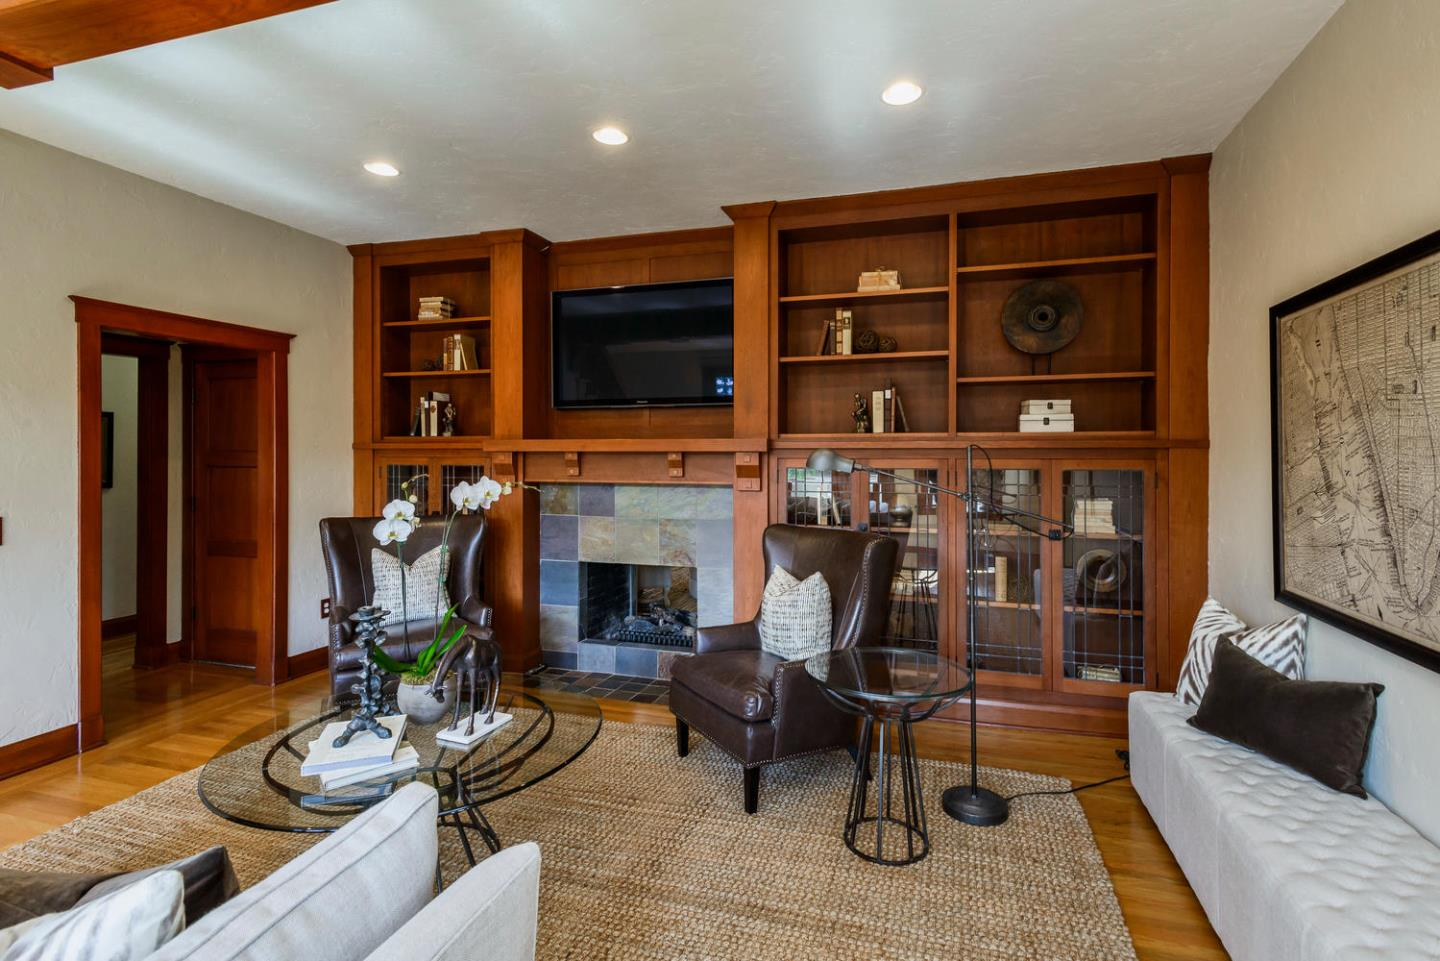 Additional photo for property listing at 2817 Hillside Dr  BURLINGAME, CALIFORNIA 94010